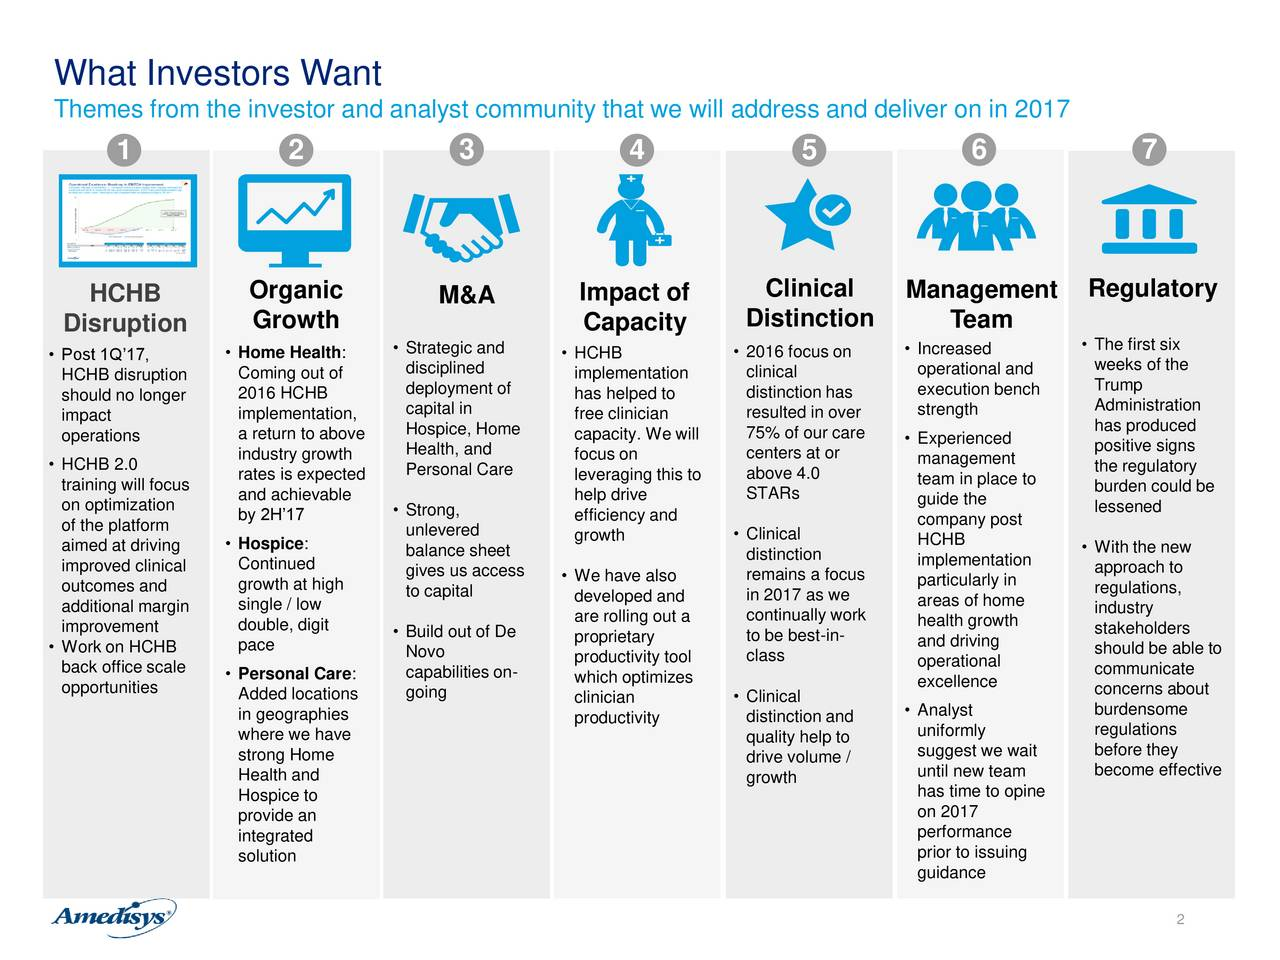 Themes from the investor and analyst community that we will address and deliver on in 2017 1 2 3 4 5 6 7 HCHB Organic M&A Impact of Clinical Management Regulatory Disruption Growth Capacity Distinction Team Strategic and  2016 focus on  Increased  The first six Post 1Q17,  Home Health: disciplined  HCHB operational and weeks of the HCHB disruption Coming out of implementation clinical Trump should no longer 2016 HCHB deployment of has helped to distinction has execution bench impact implementation, capital in free clinician resulted in over strength Administration operations a return to above Hospice, Home capacity. We will 75% of our care  Experienced has produced industry growth Health, and focus on centers at or positive signs HCHB 2.0 rates is expected Personal Care leveraging this to above 4.0 management the regulatory training will focus team in place to burden could be on optimization and achievable help drive STARs guide the lessened of the platform by 2H17  Strong, efficiency and company post Hospice: unlevered growth  Clinical HCHB aimed at driving balance sheet distinction implementation  With the new improved clinical Continued gives us access  We have also remains a focus approach to outcomes and growth at high to capital developed and in 2017 as we particularly in regulations, additional margin single / low areas of home industry improvement double, digit  Build out of De are rolling out a continually work health growth stakeholders Work on HCHB pace proprietary to be best-in- and driving should be able to Novo productivity tool class operational back office scale  Personal Care: capabilities on- which optimizes excellence communicate opportunities Added locations going clinician  Clinical concerns about in geographies productivity distinction and  Analyst burdensome where we have uniformly regulations quality help to suggest we wait before they strong Home drive volume / until new team become effective Health and growth Hospice to has time to opine pr